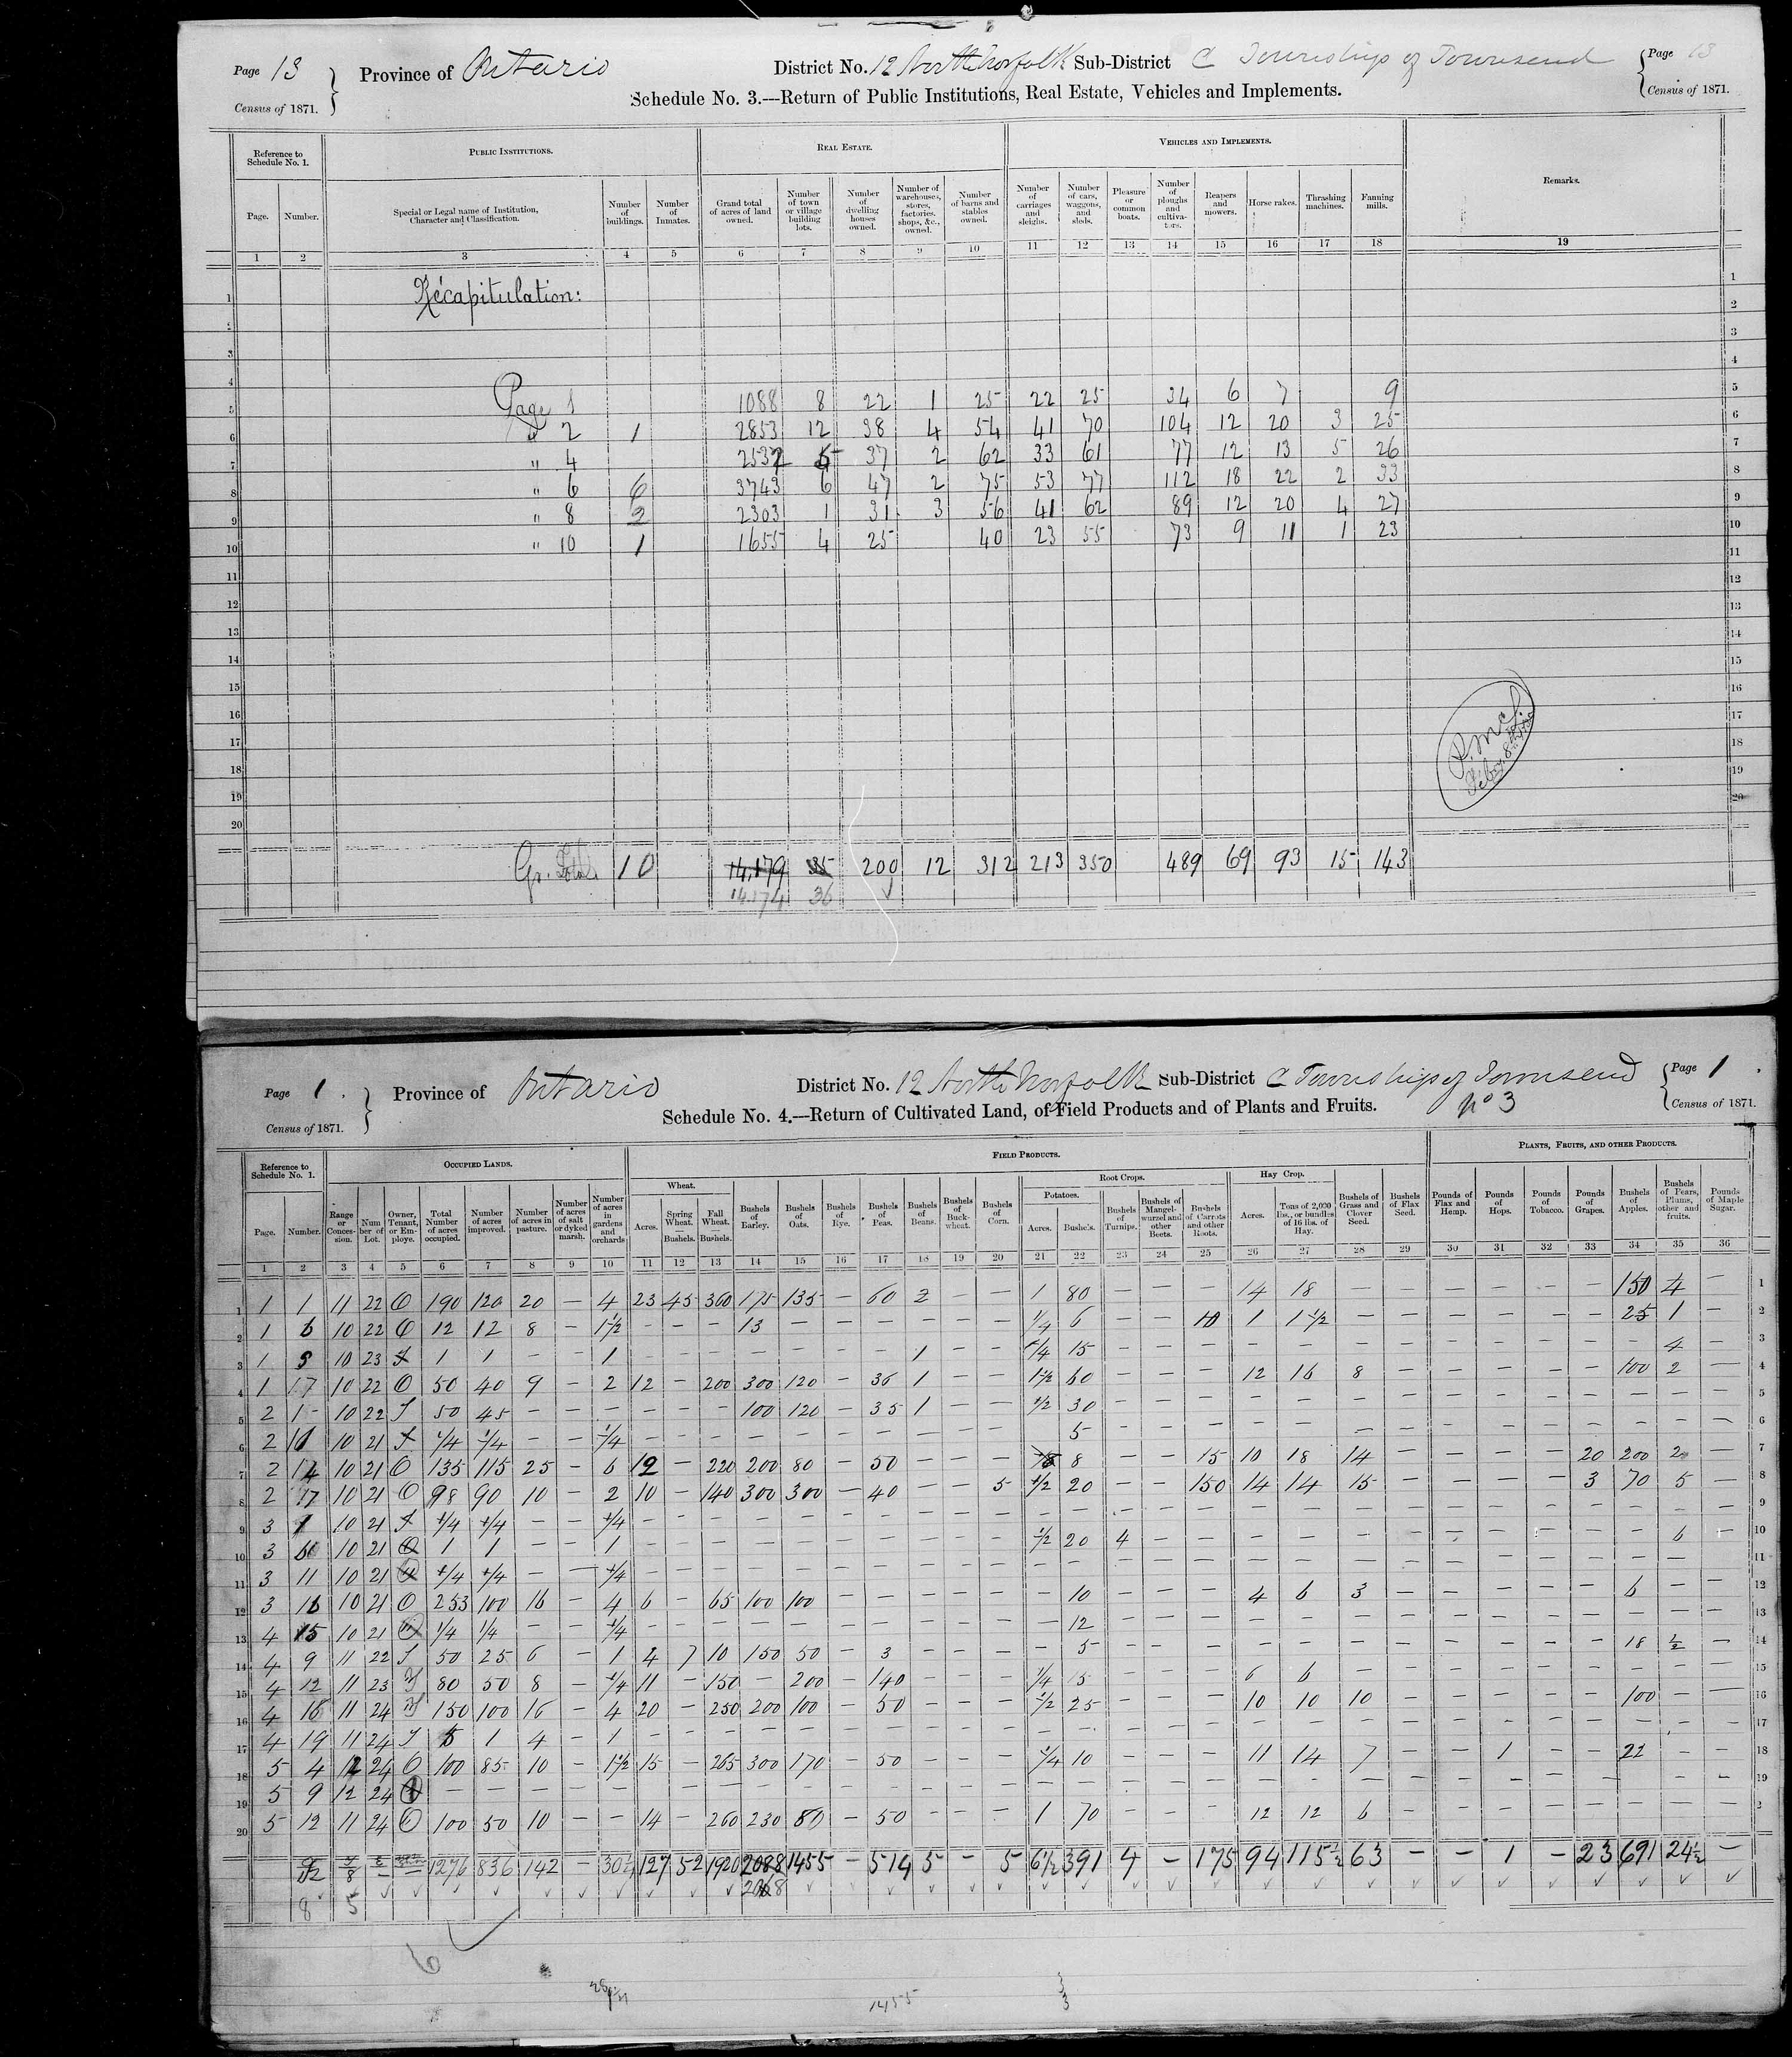 Title: Census of Canada, 1871 - Mikan Number: 142105 - Microform: c-9909